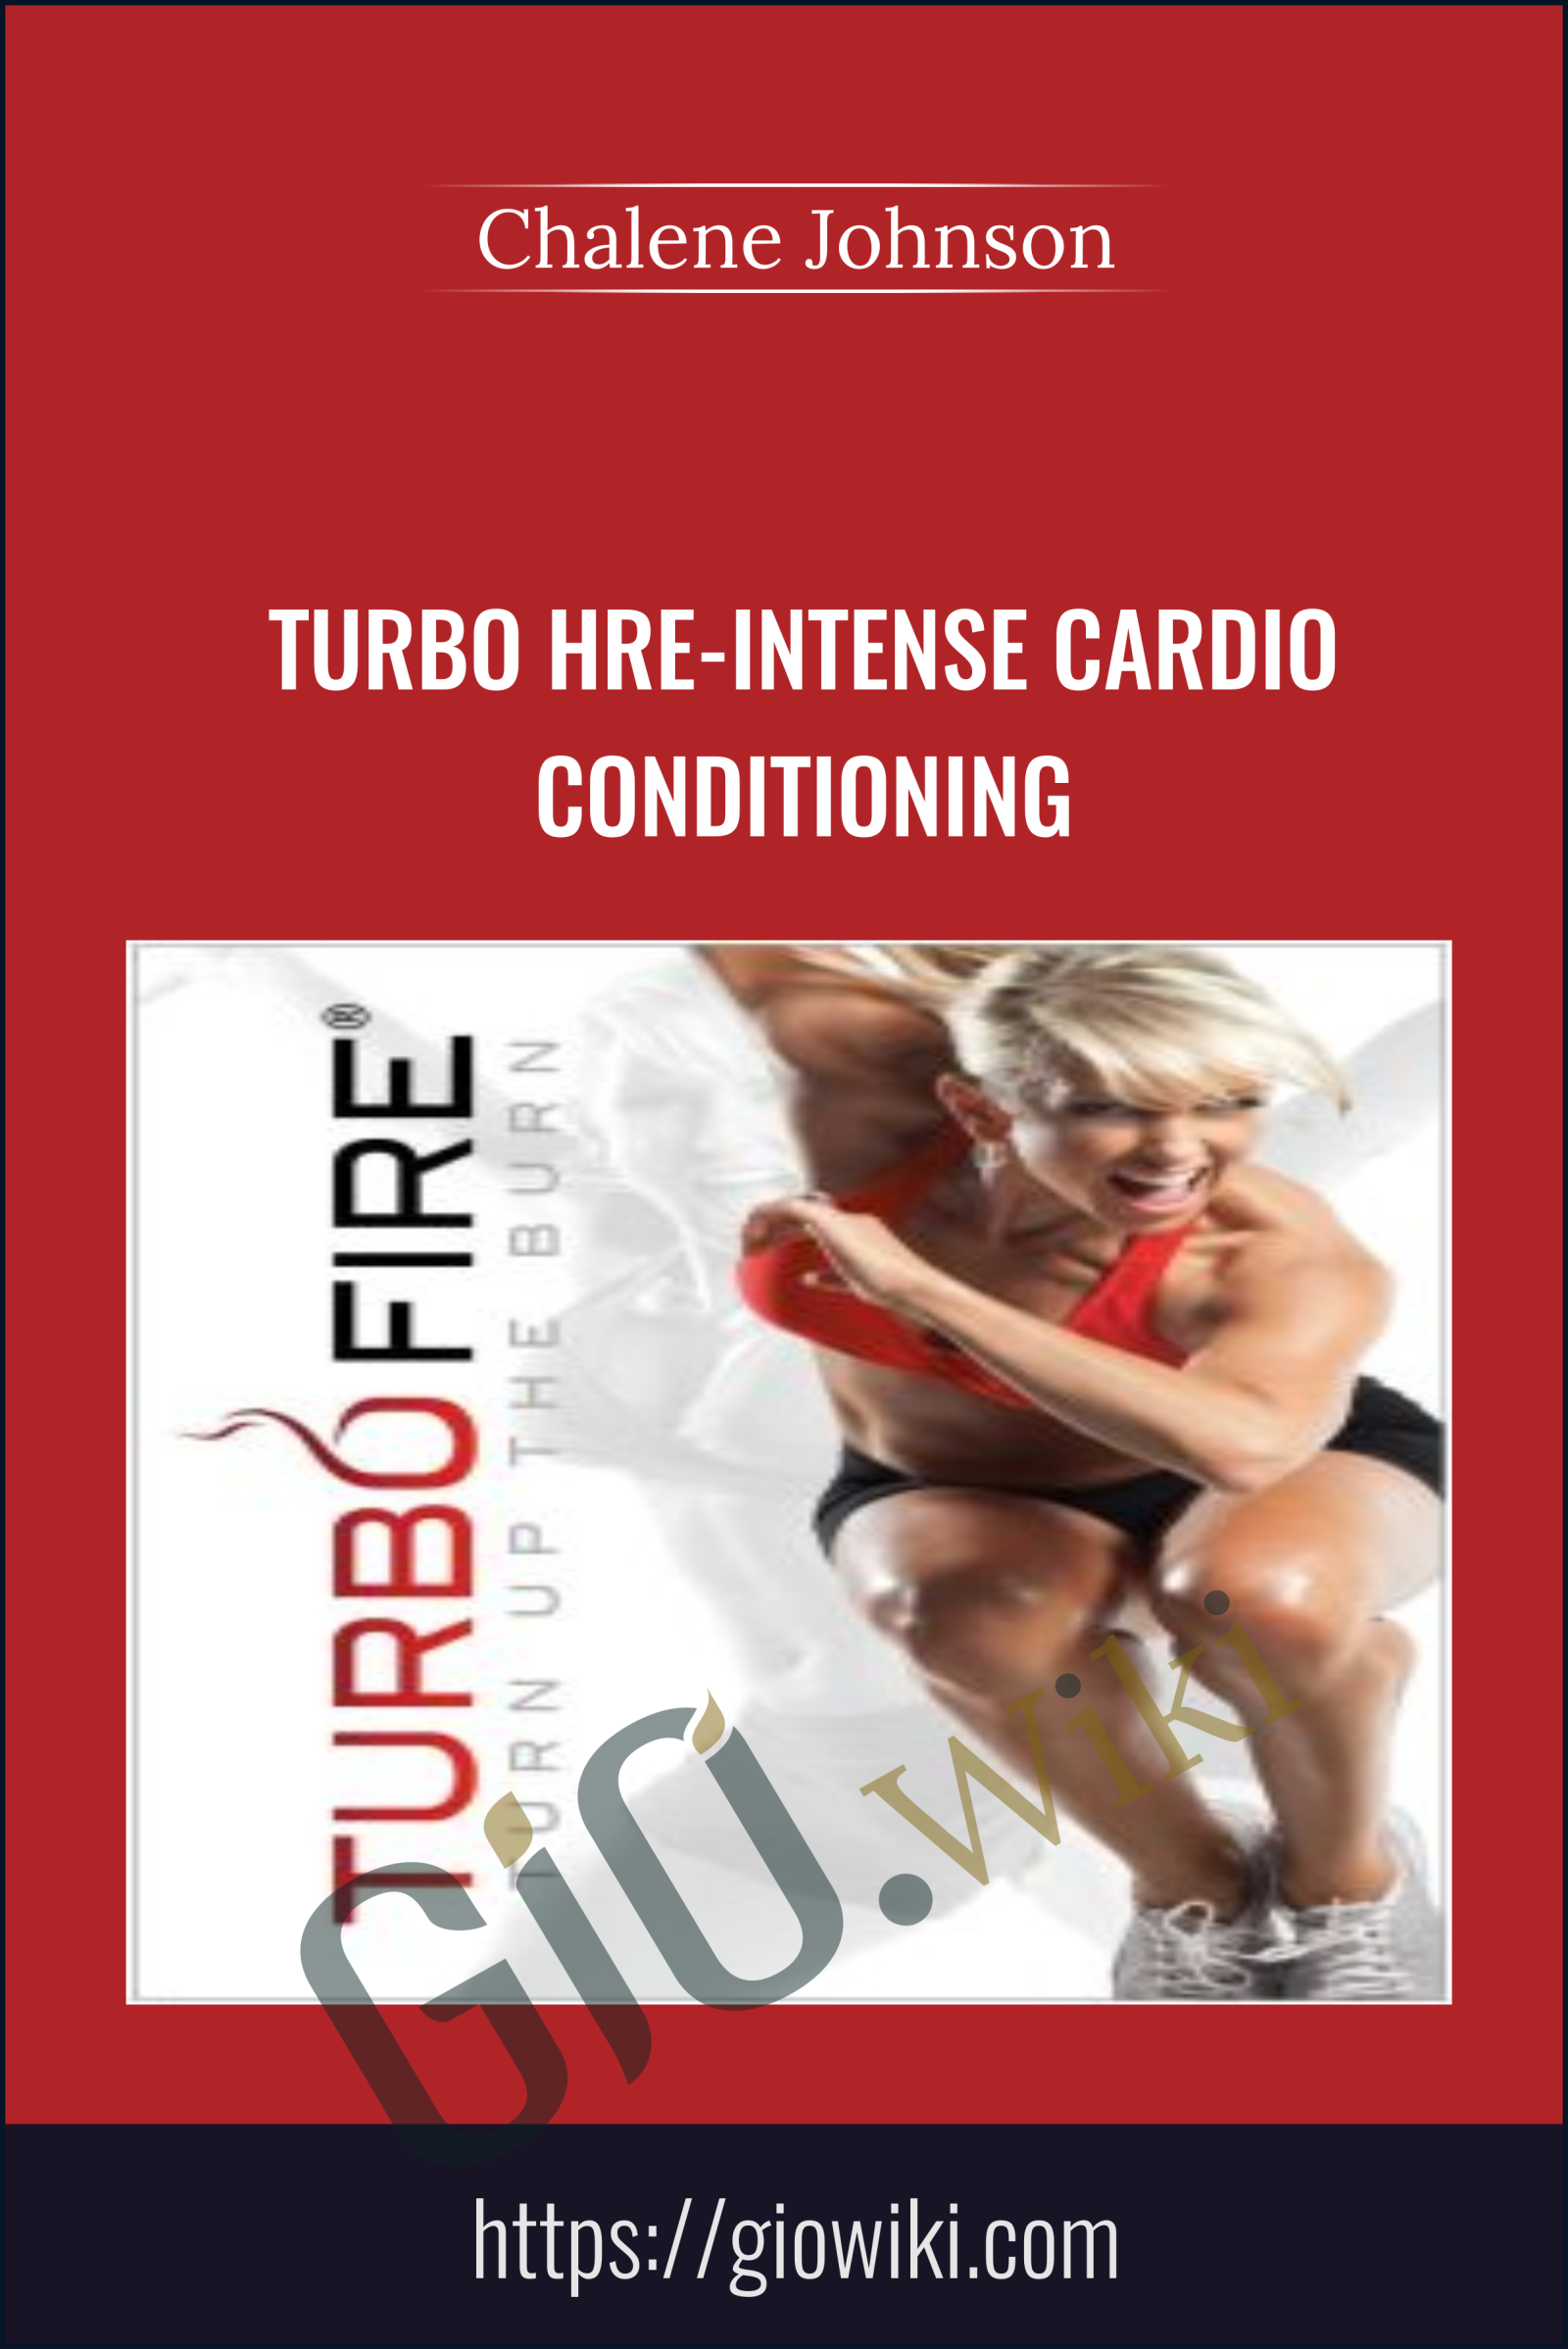 Turbo Hre-Intense Cardio Conditioning - Chalene Johnson